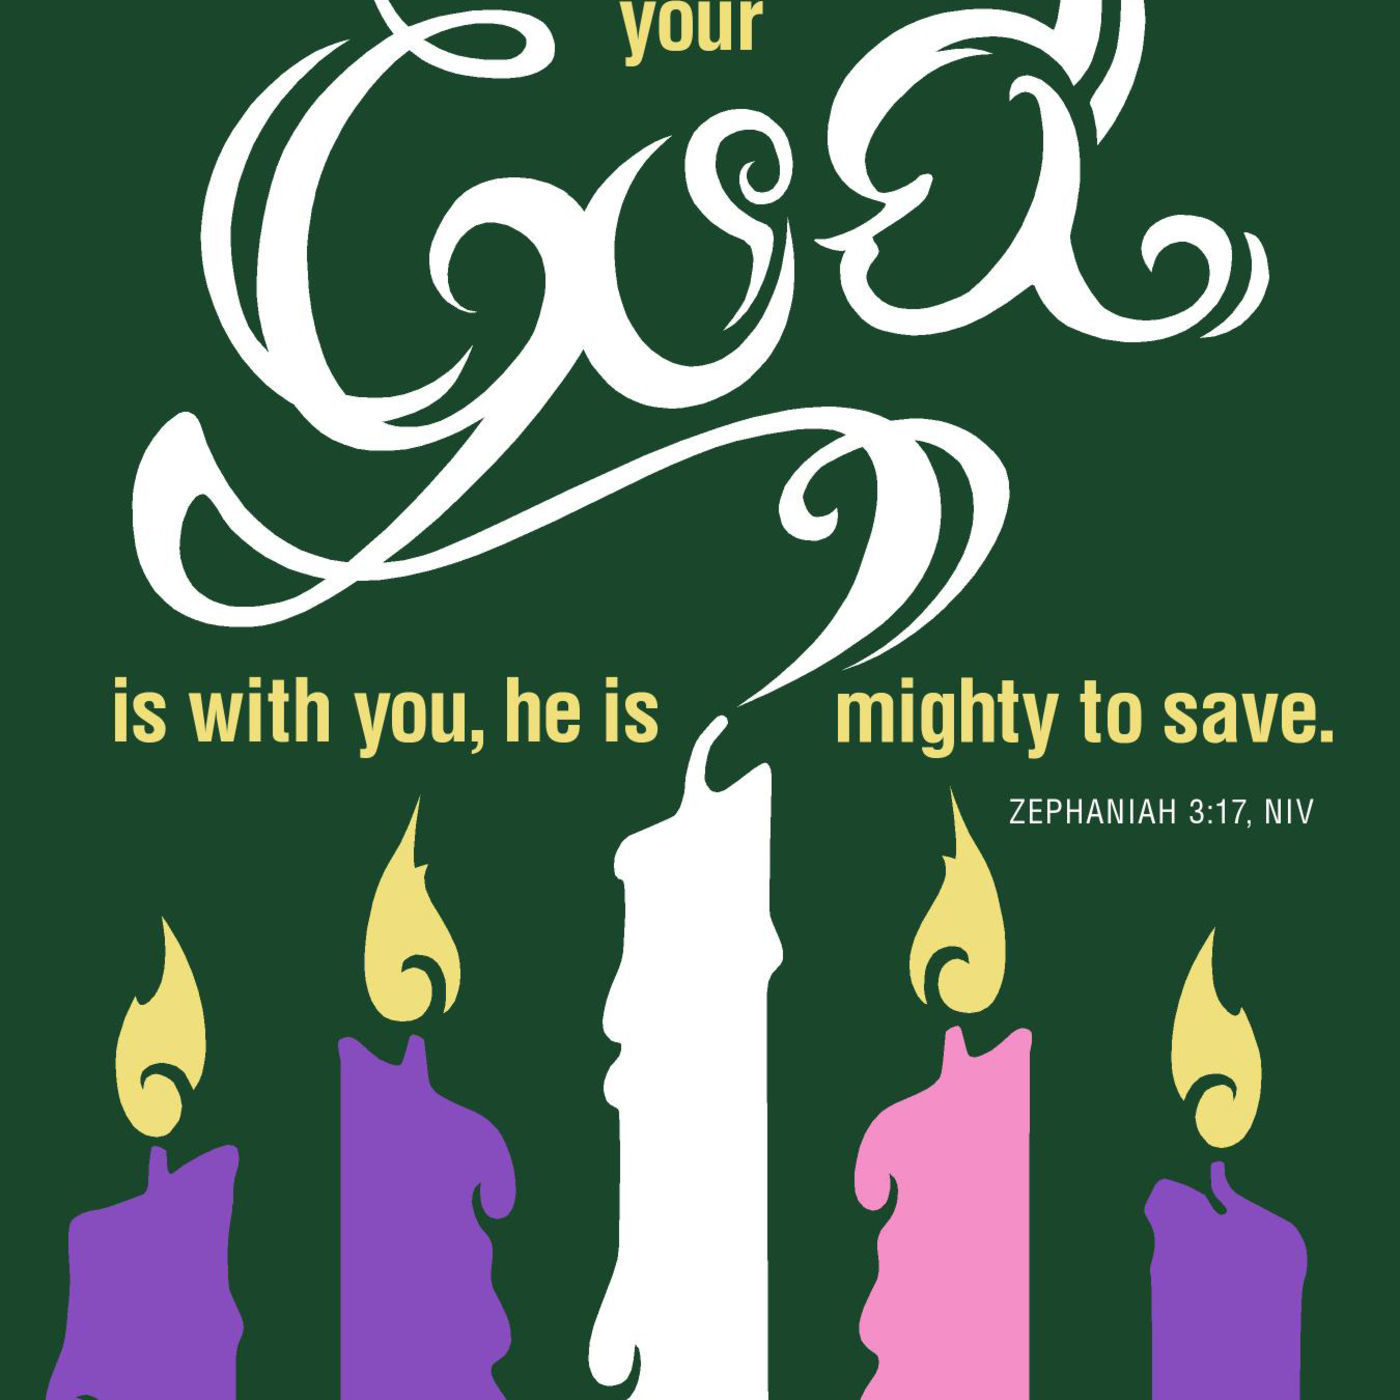 Christmas Day Message - Fifth Candle of Advent - Salvation